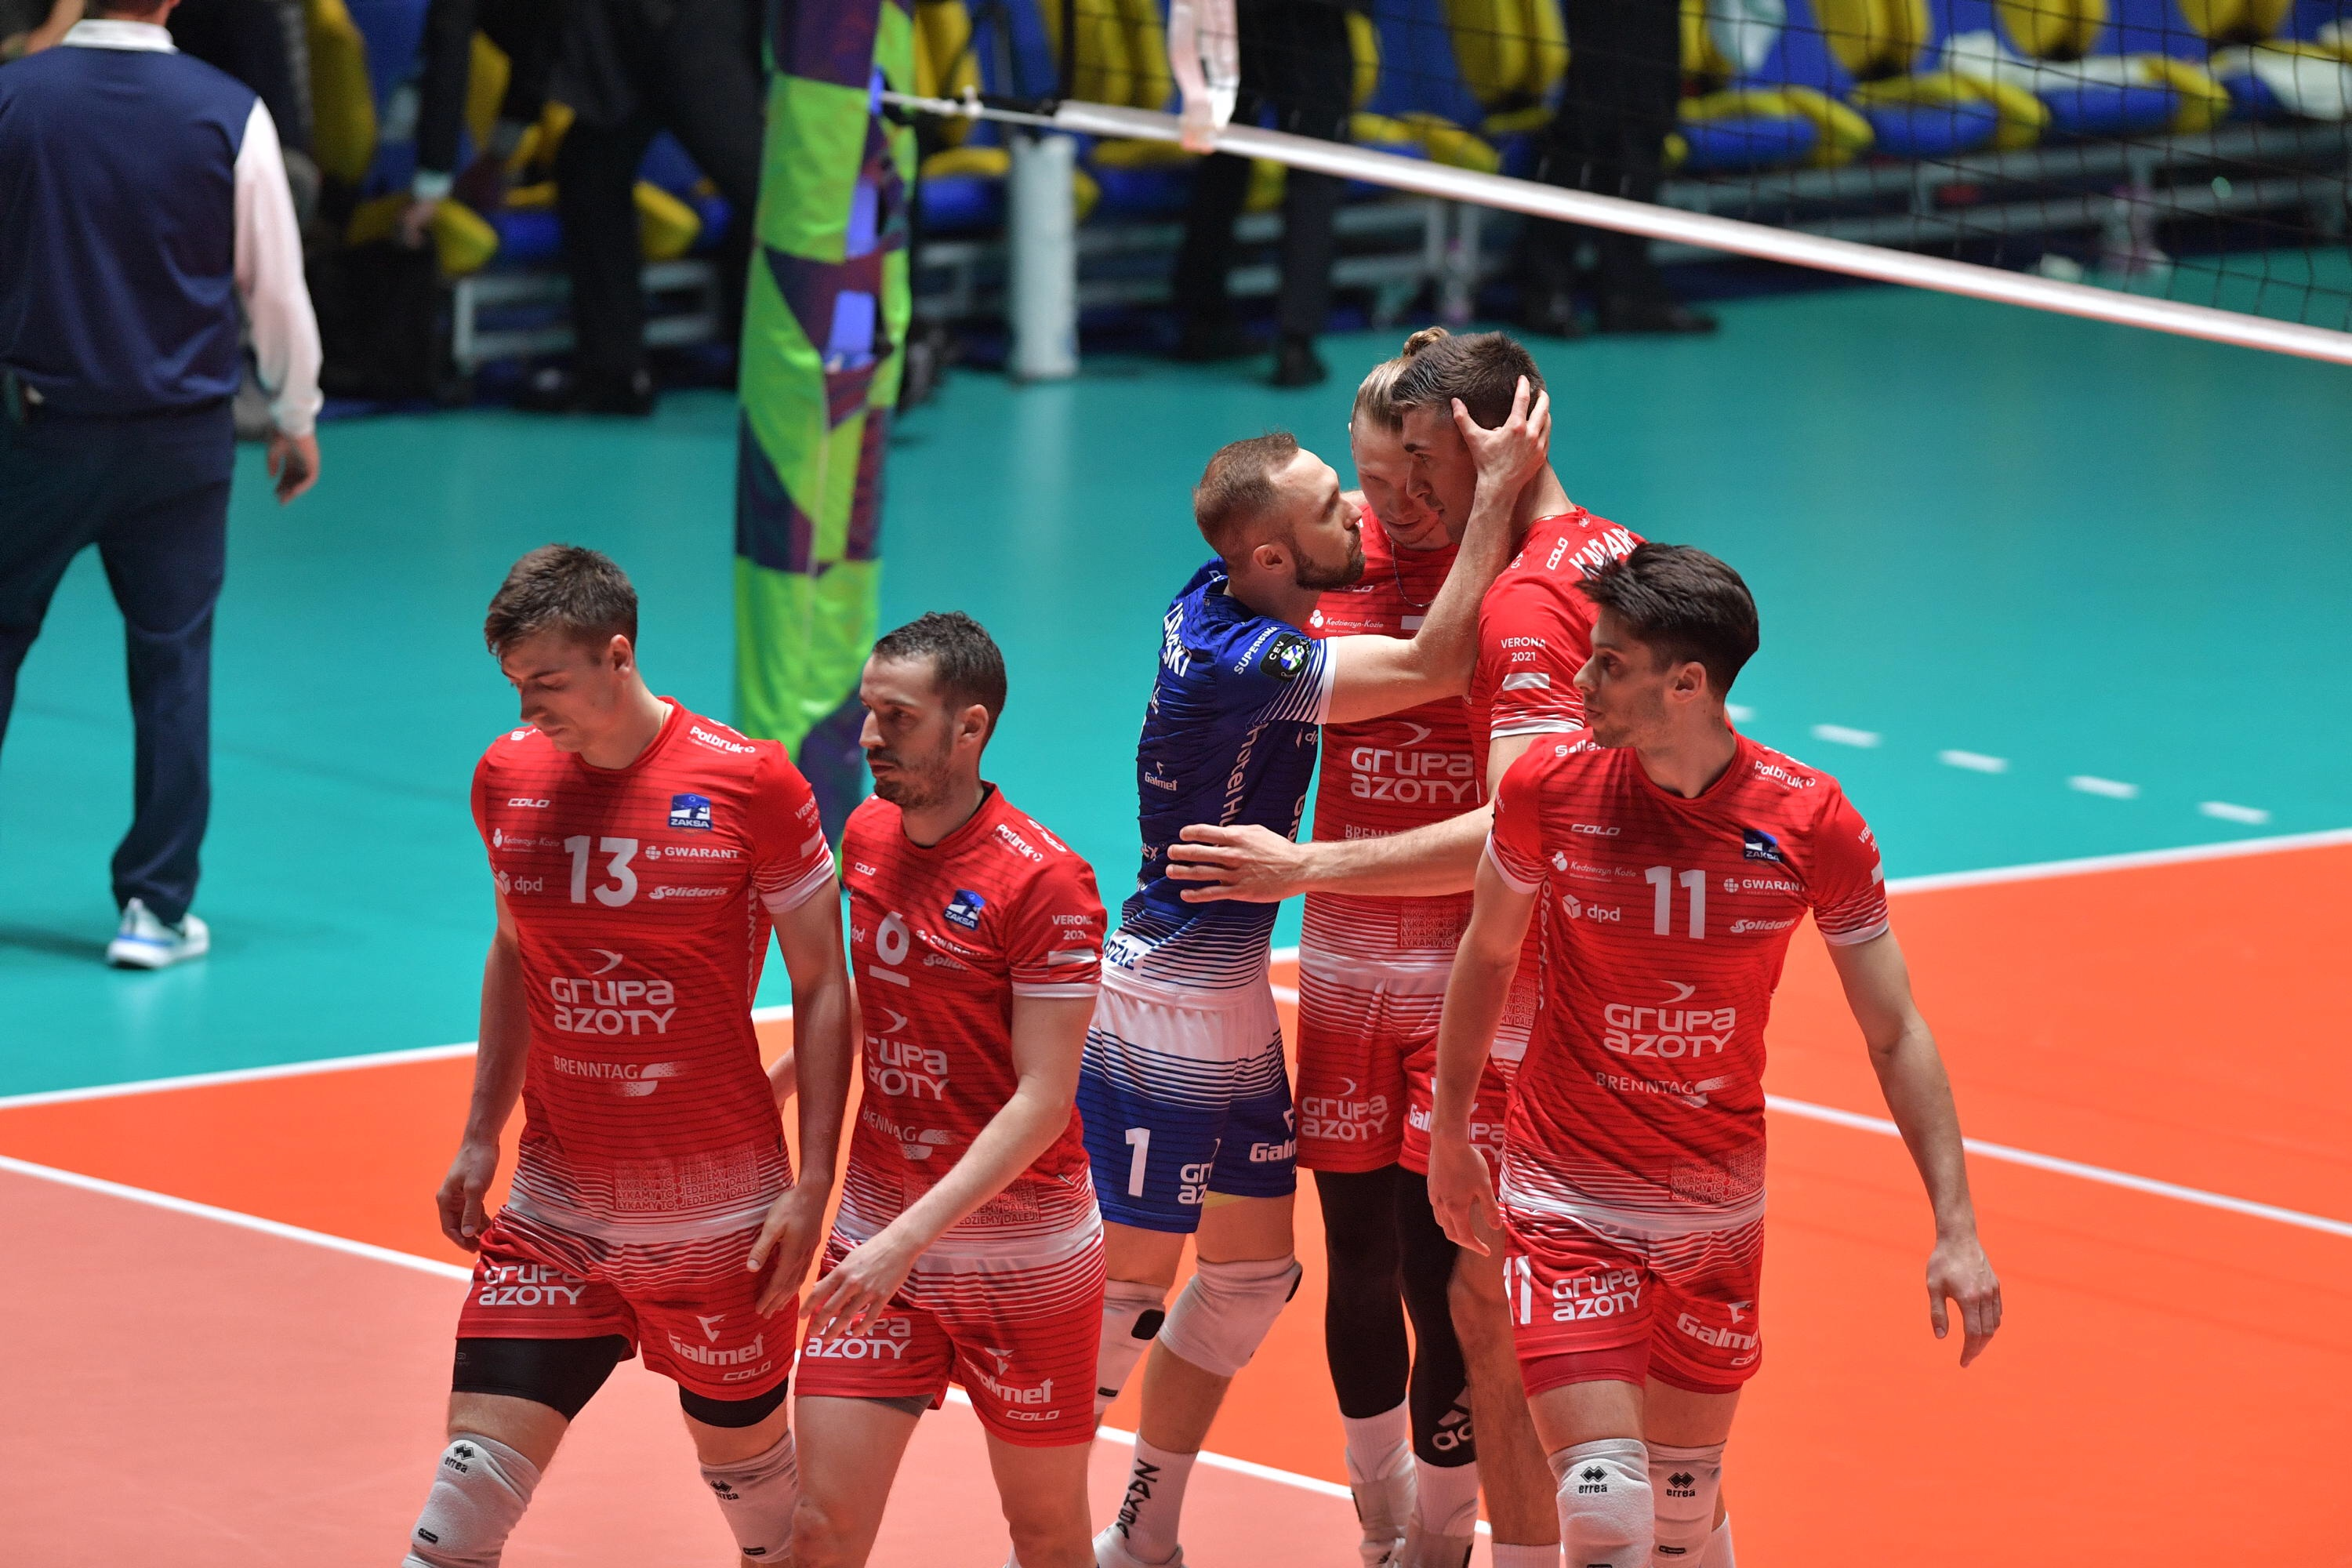 ZAKSA first Polish club to win Champions League! Trentino defeated in four sets in Verona's Superfinals!